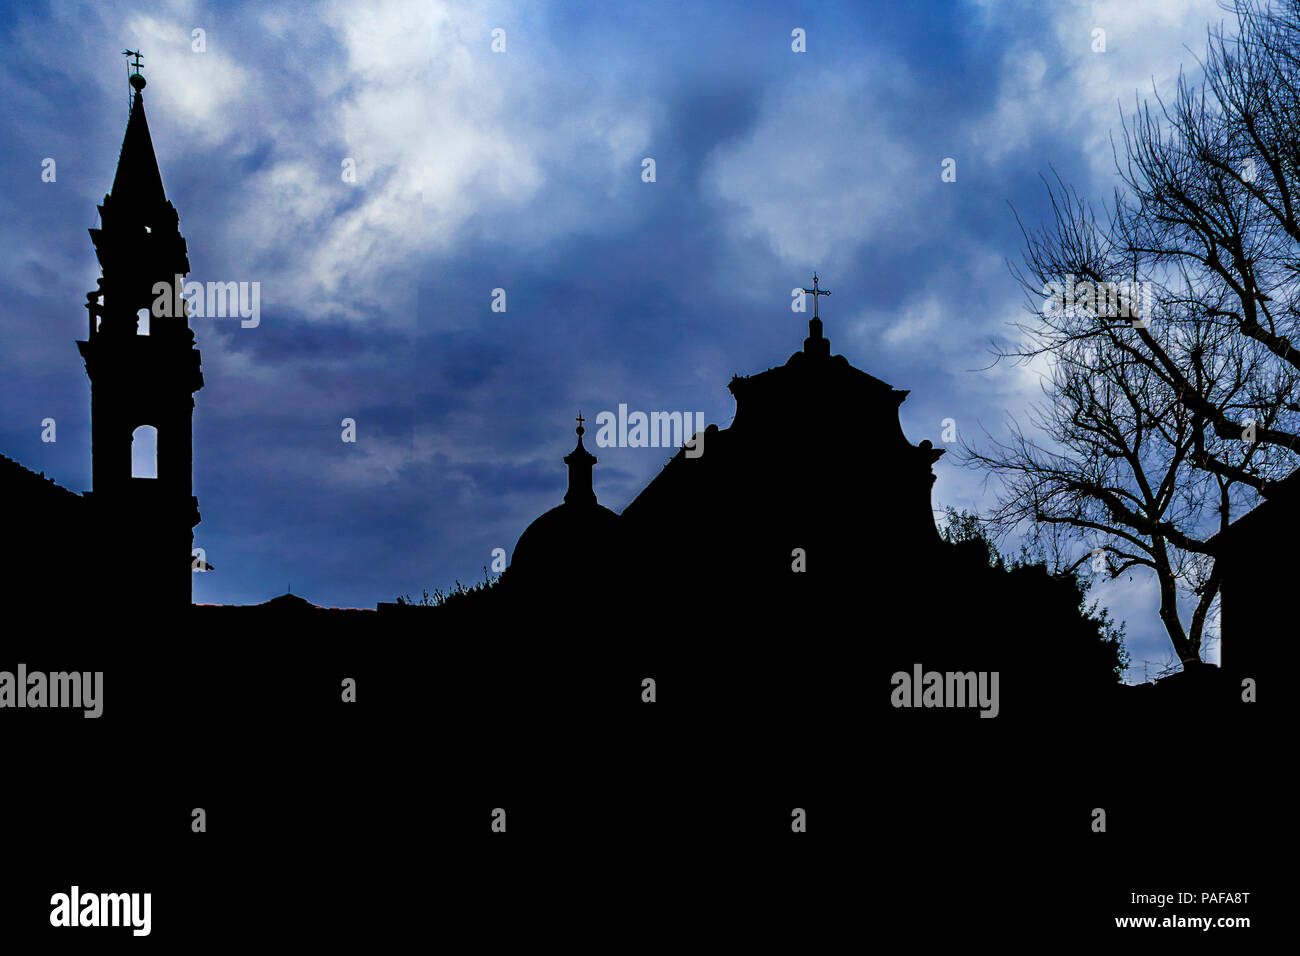 Silhouette scene at famous piazza santo spirito at oltrarno district in florence city, Italy - Stock Image